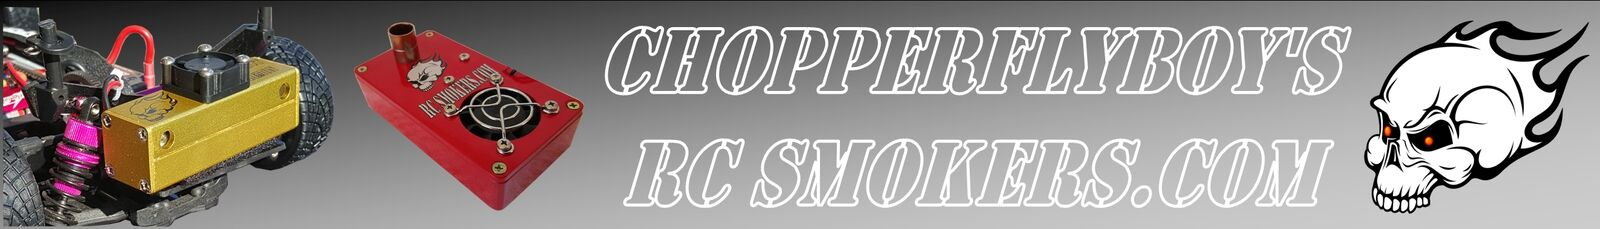 Chopperflyboy's Smoke Generators